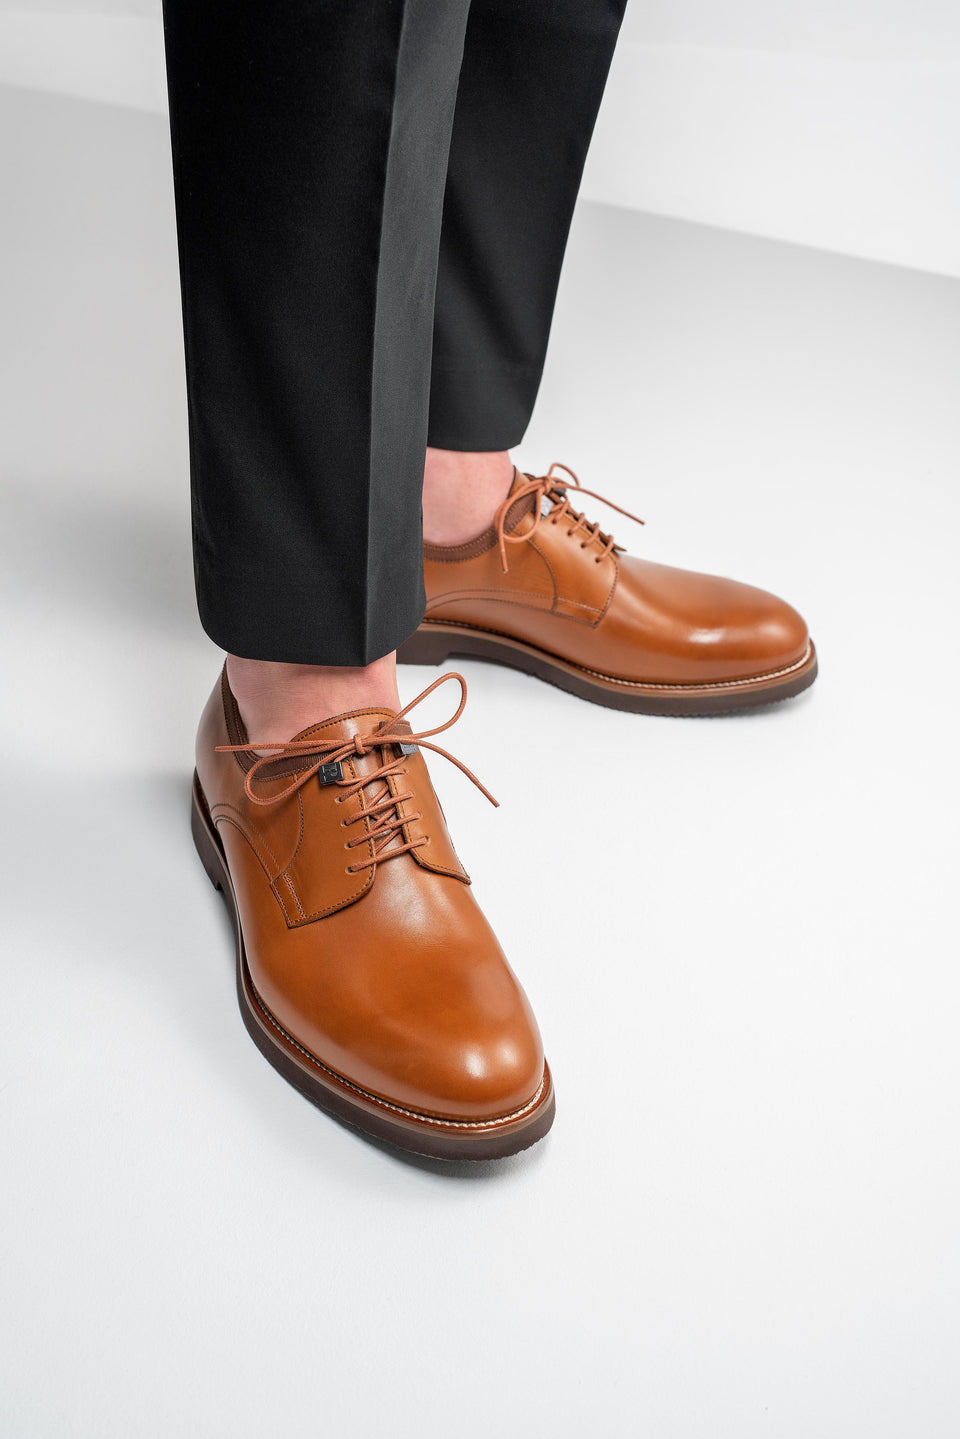 001 - Derby in Tan Calfskin